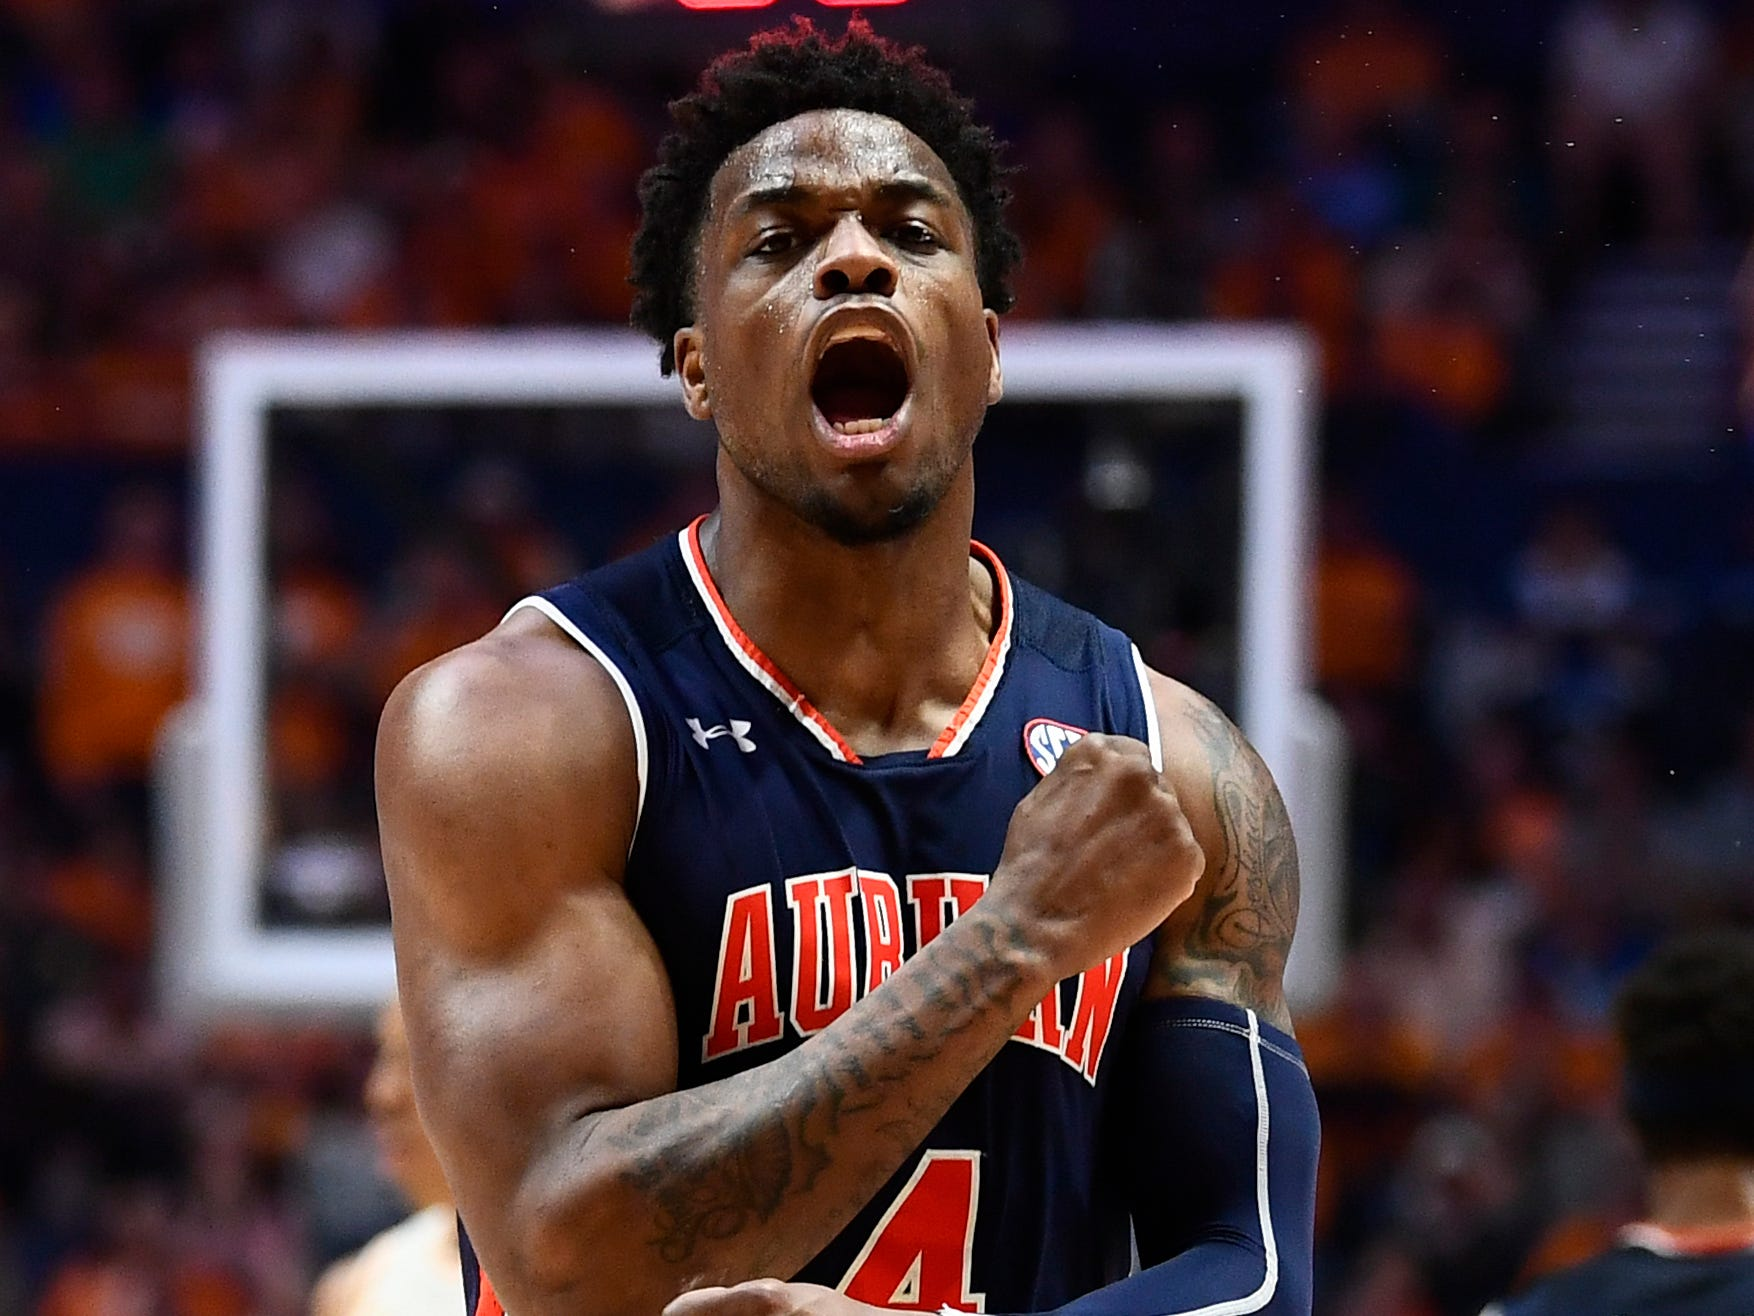 Auburn guard/forward Malik Dunbar and the Tigers rolled over the Vols on Sunday.